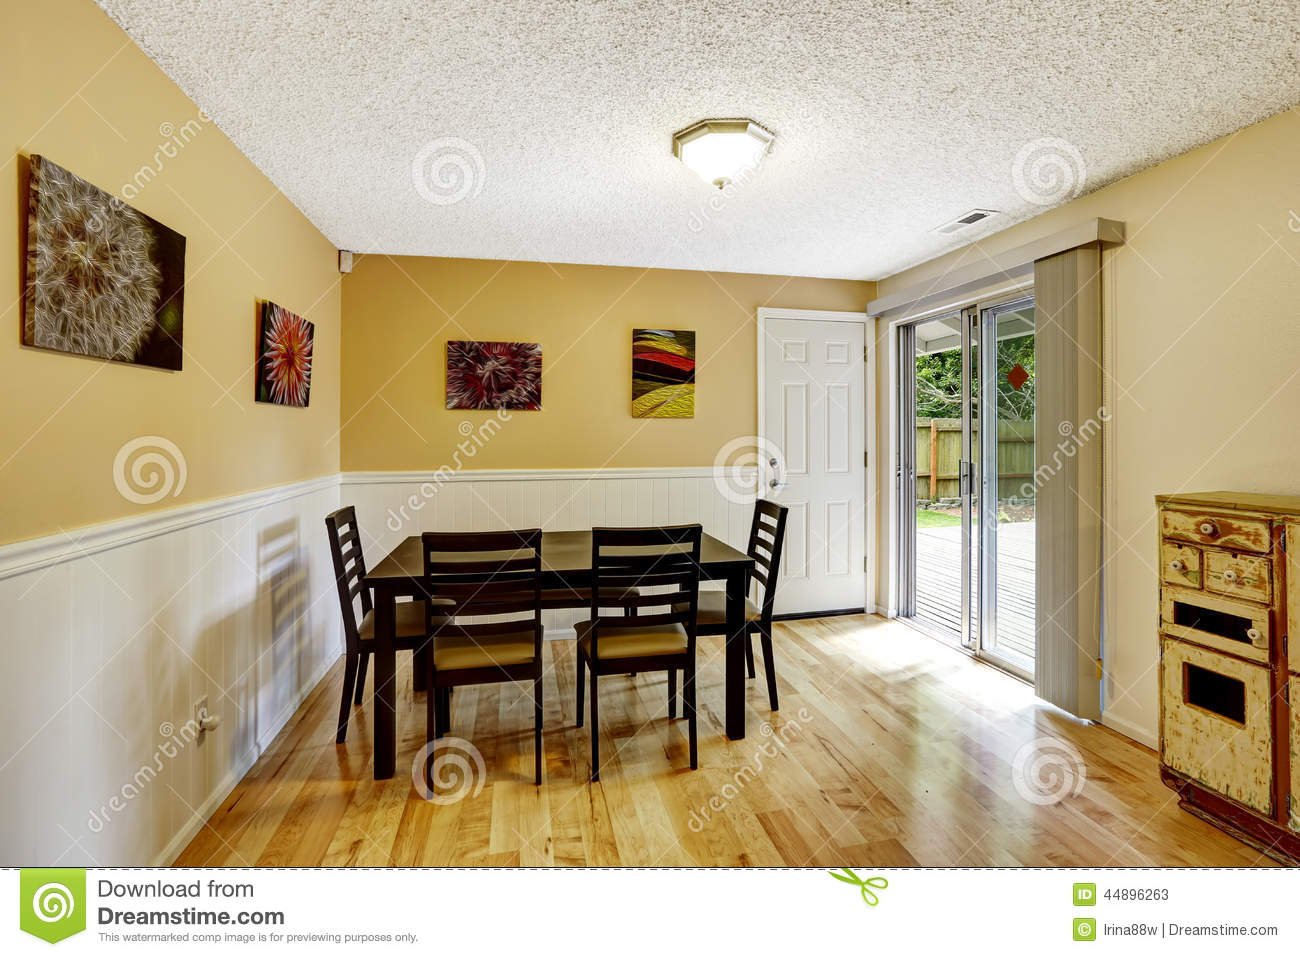 Yellow Dining Room Walls Dining Room With Exit To Backyard Patio Area Stock Photo